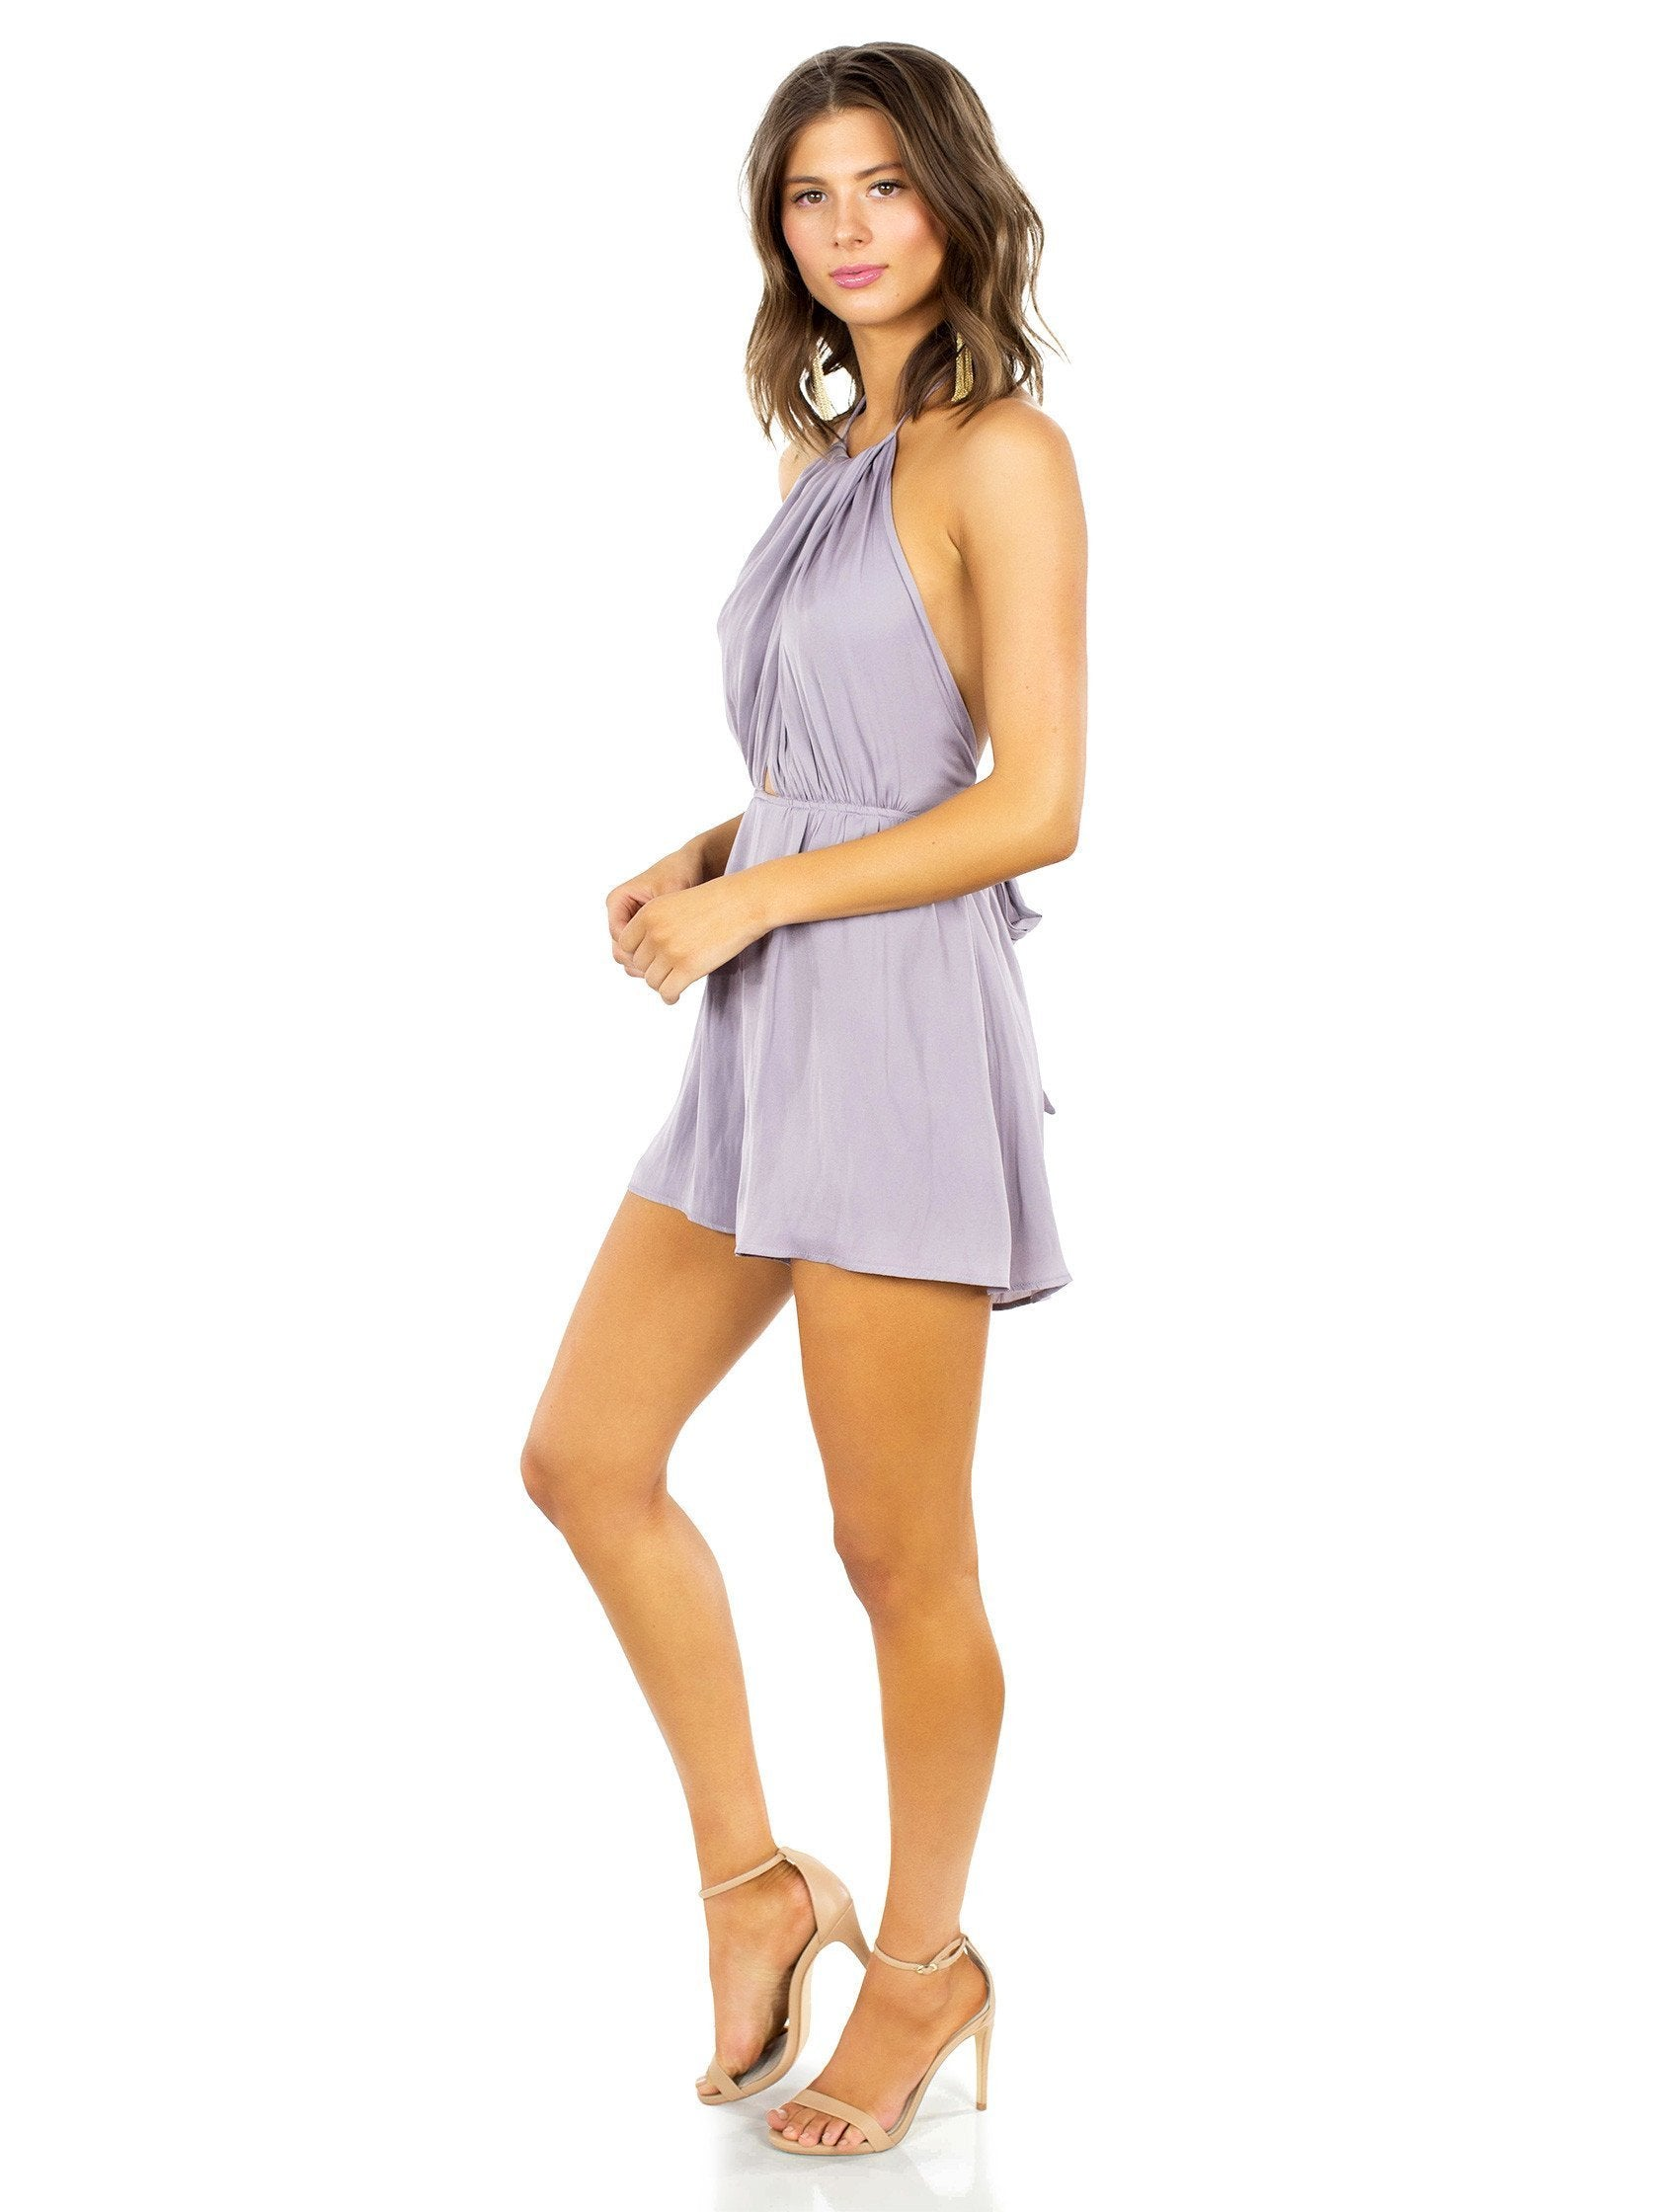 Woman wearing a romper rental from Lush called Take A Chance Romper